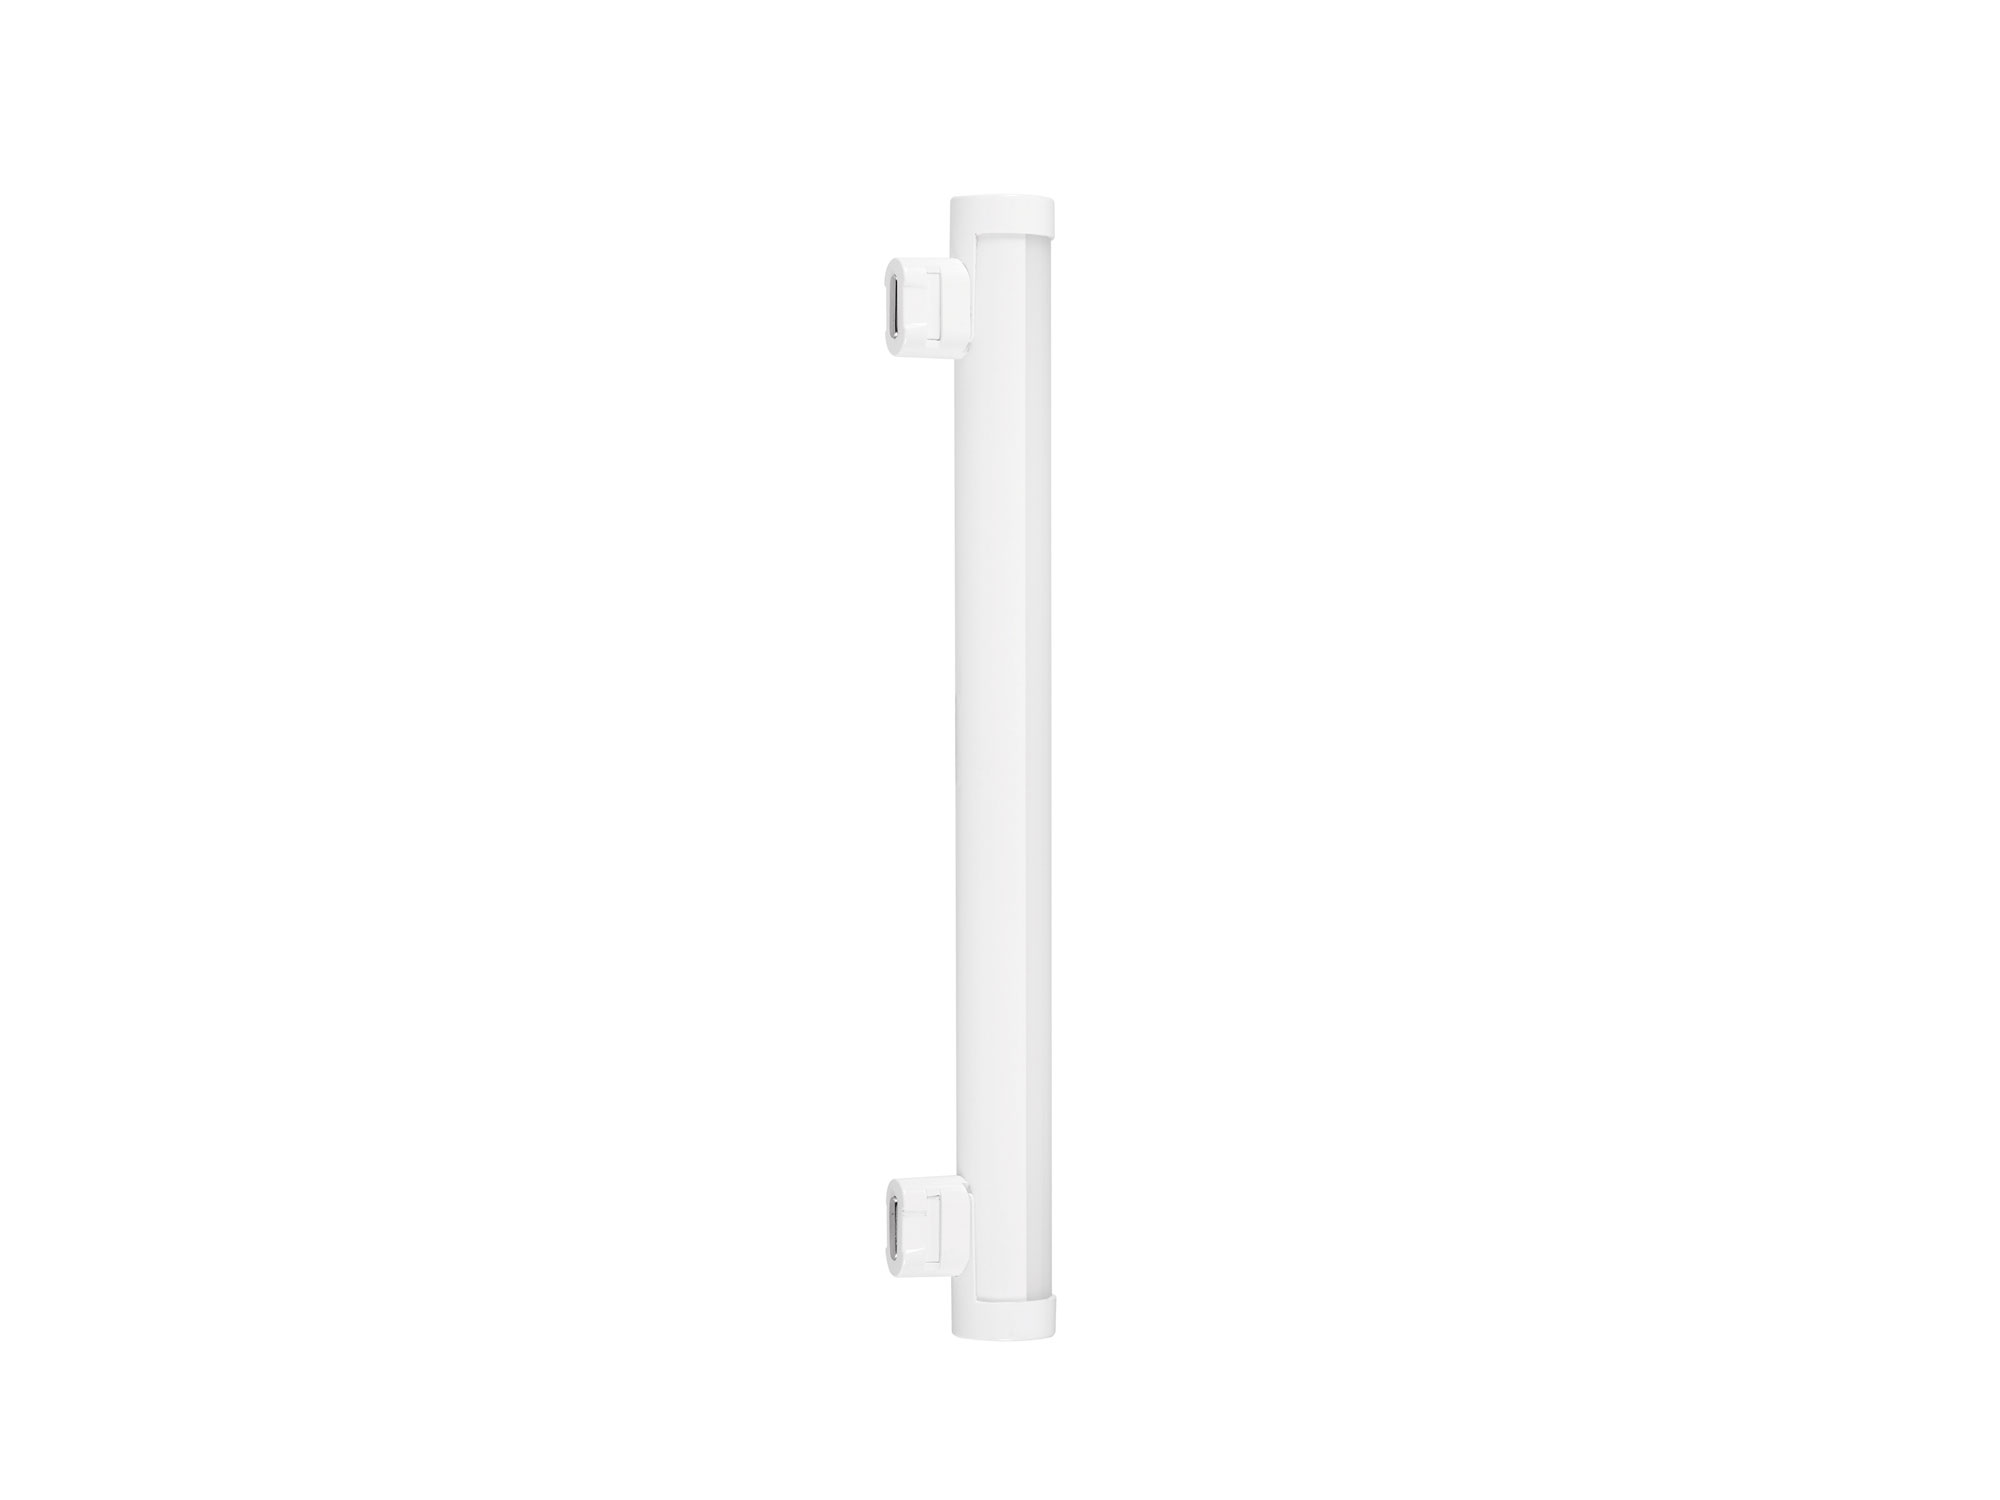 Osram Linestra Led 3 5w Led Version Of Osram Linestra 35w S14s 300mm Opal